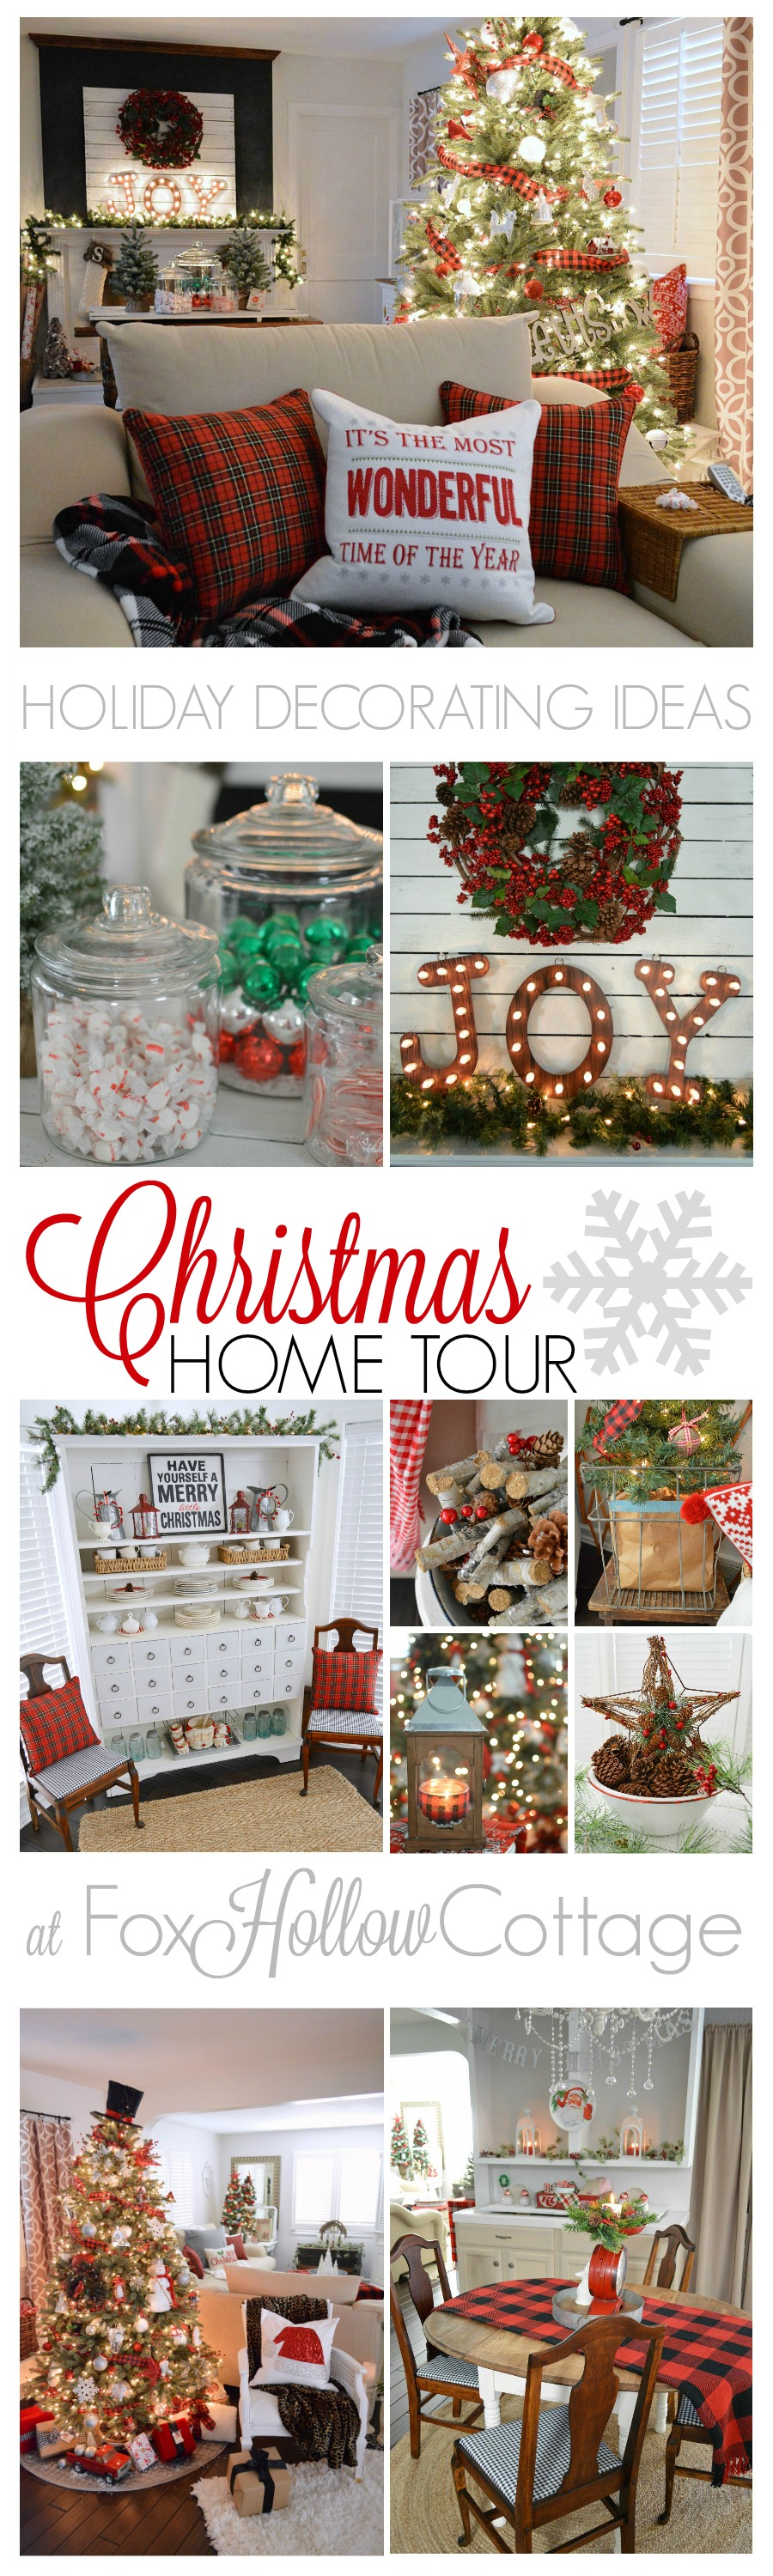 Happy Holiday Decorating Ideas From